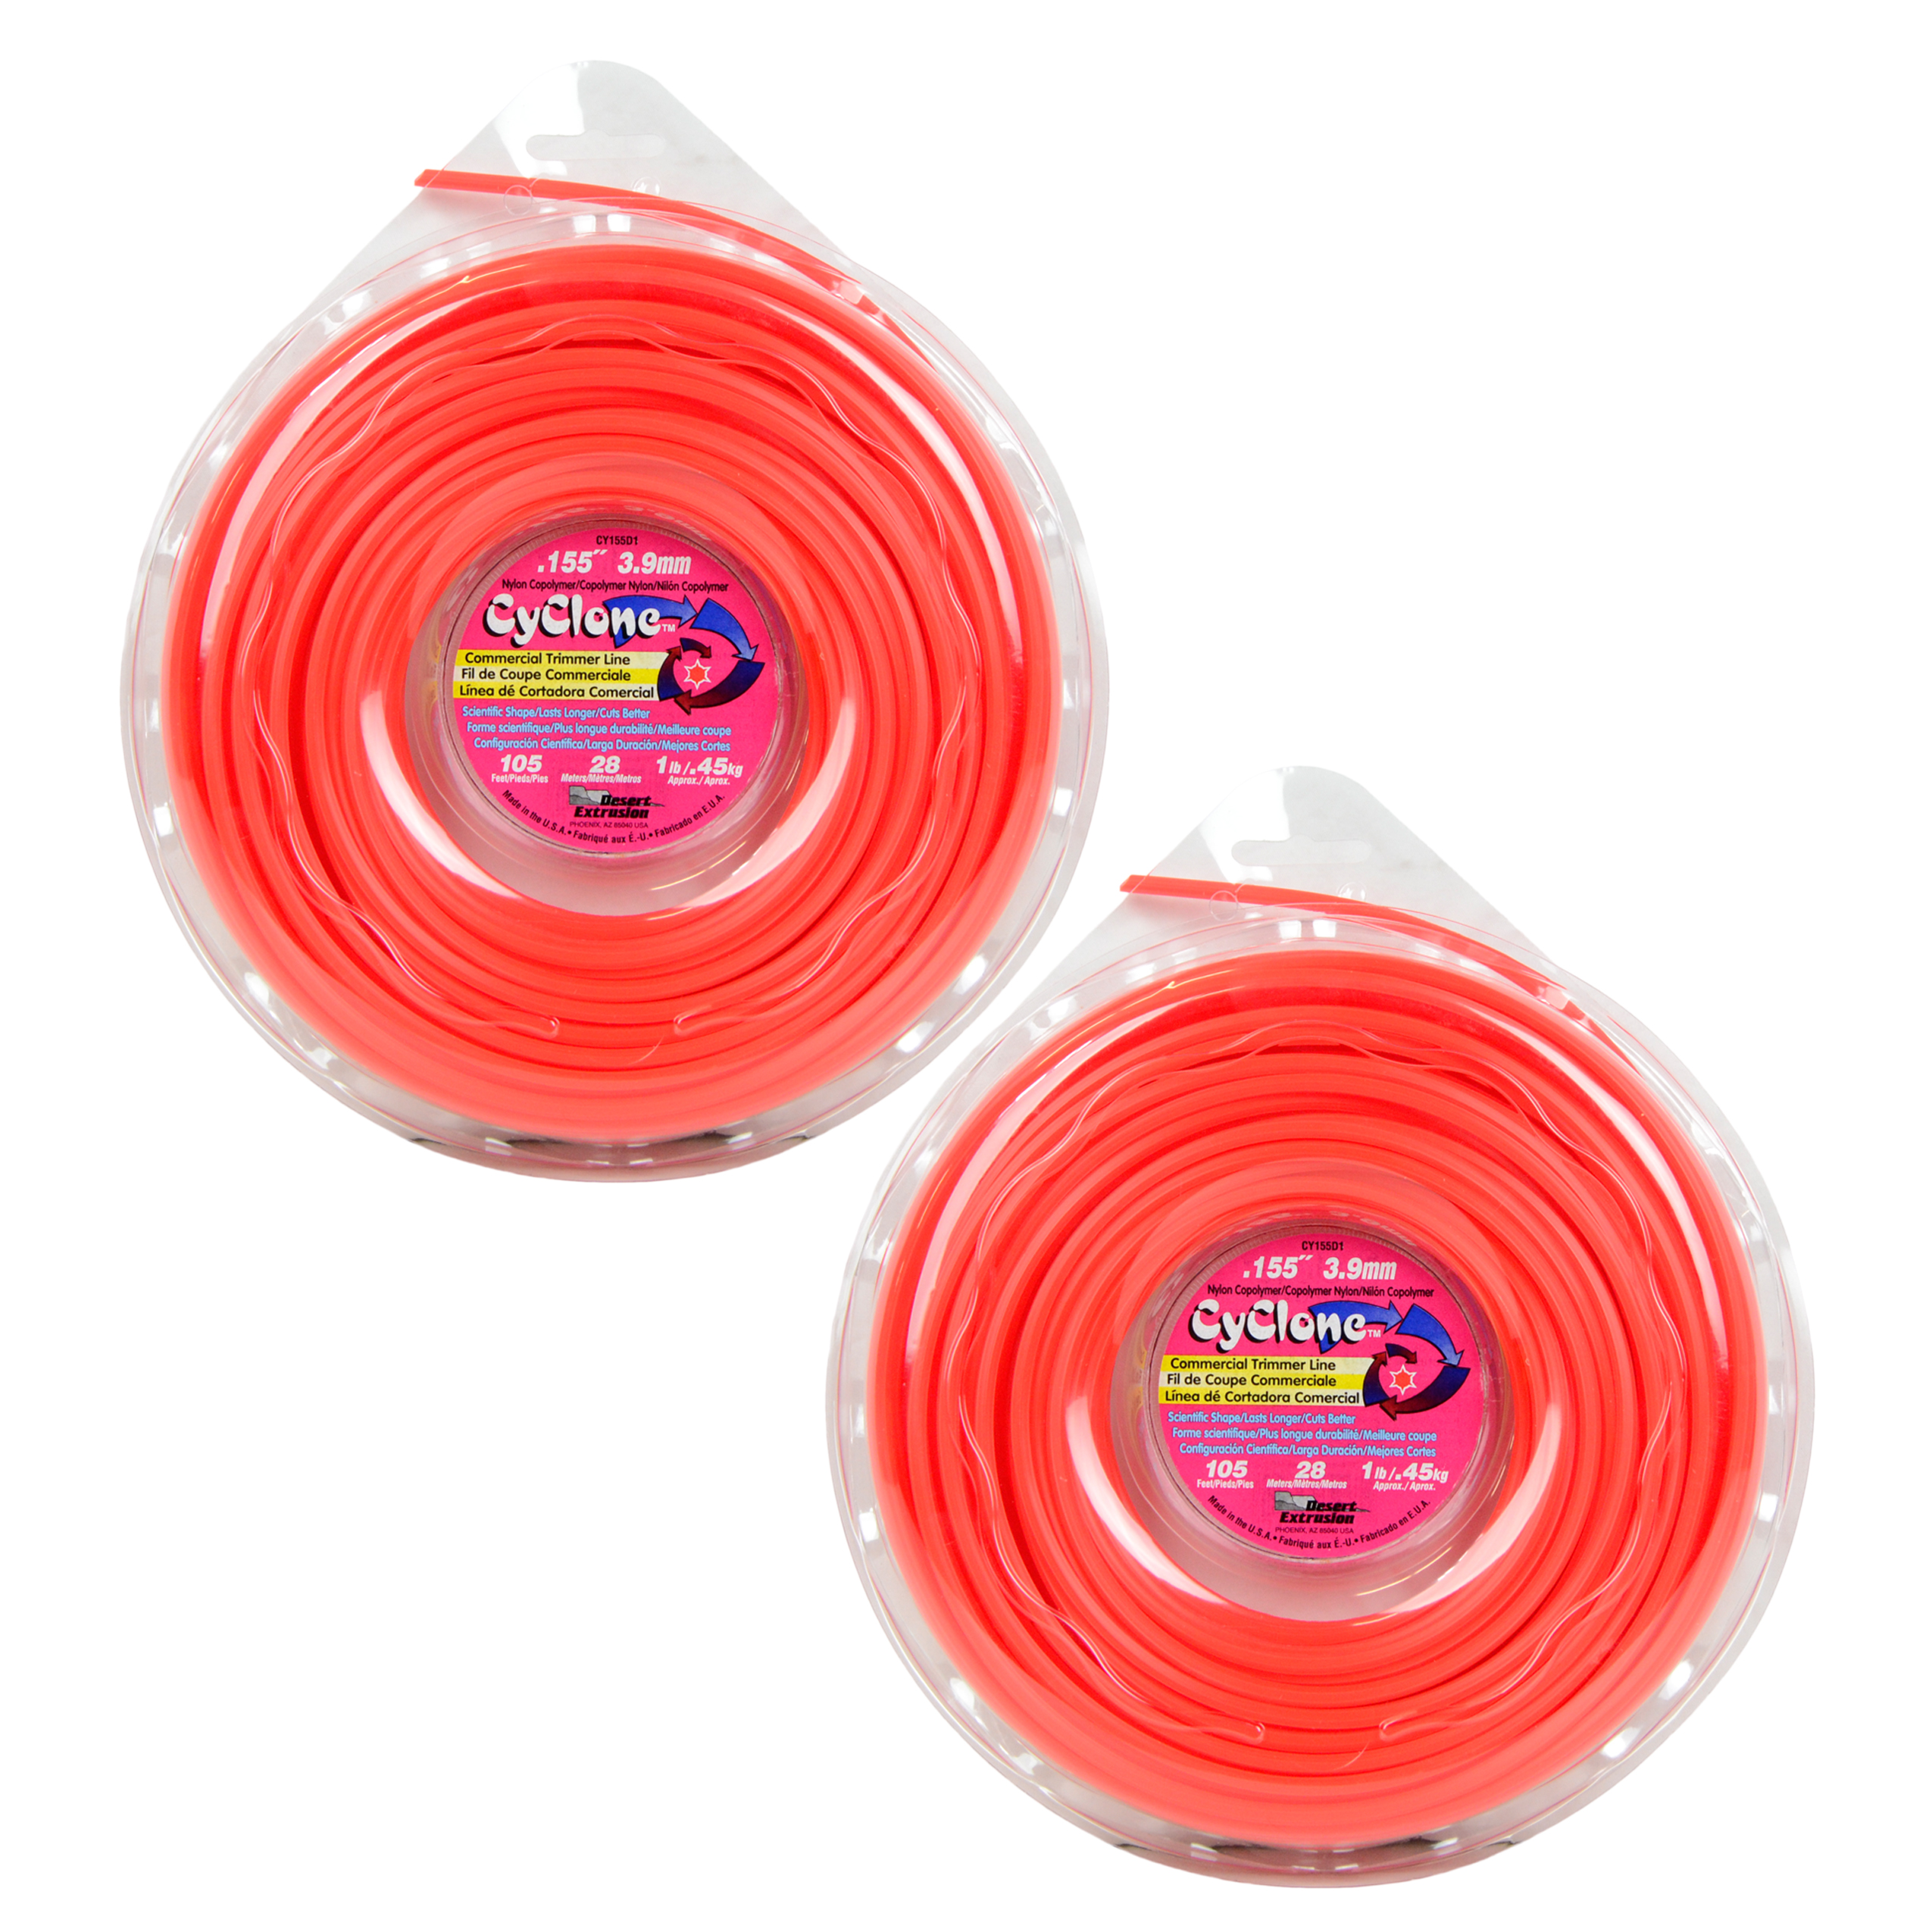 "Cyclone CY155D1 0.155"" x 155' Commercial String Trimmer Line Red (2-Pack), Made in the USA"